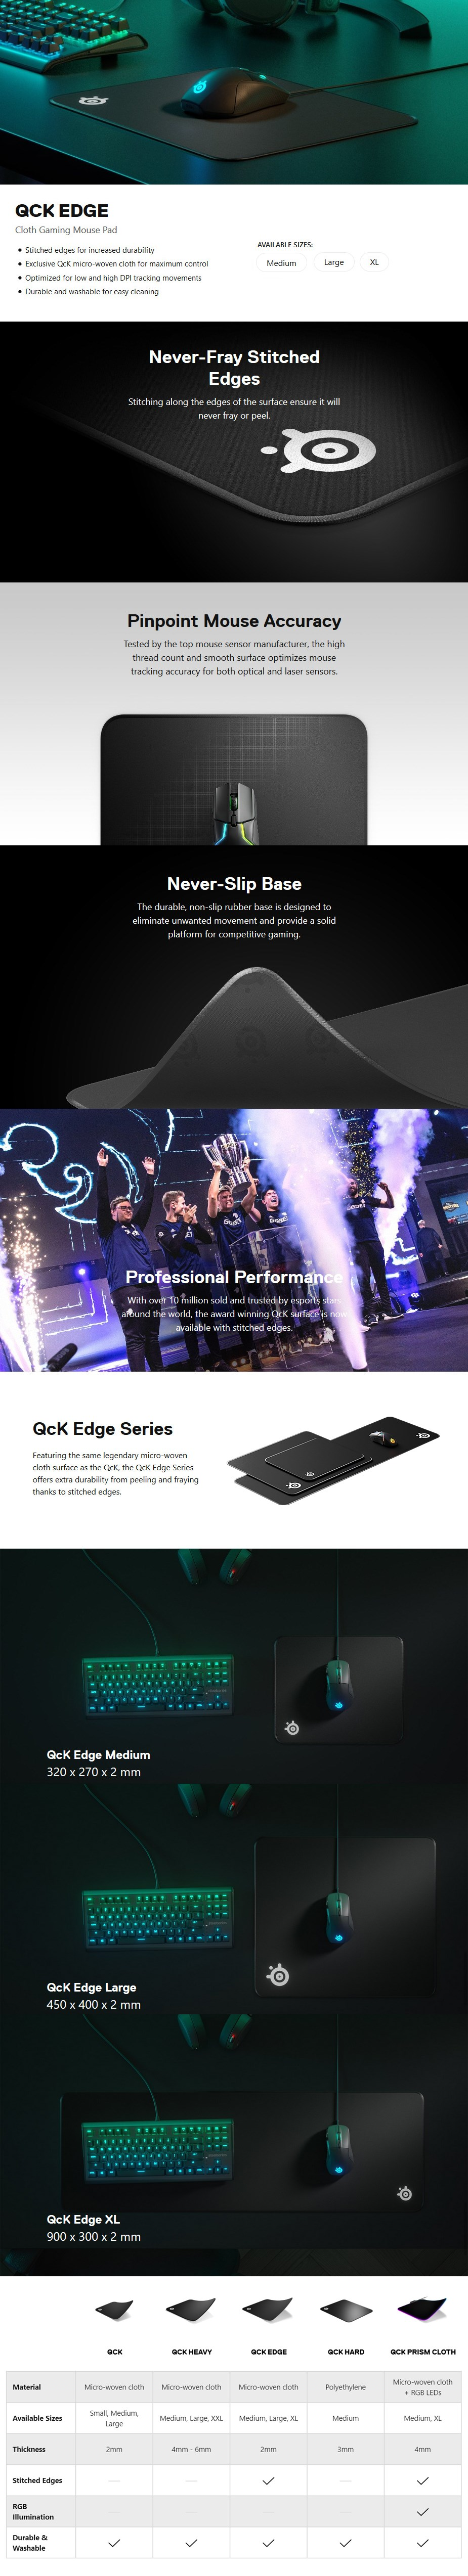 SteelSeries QcK Edge Gaming Mouse Pad - Medium - Desktop Overview 1